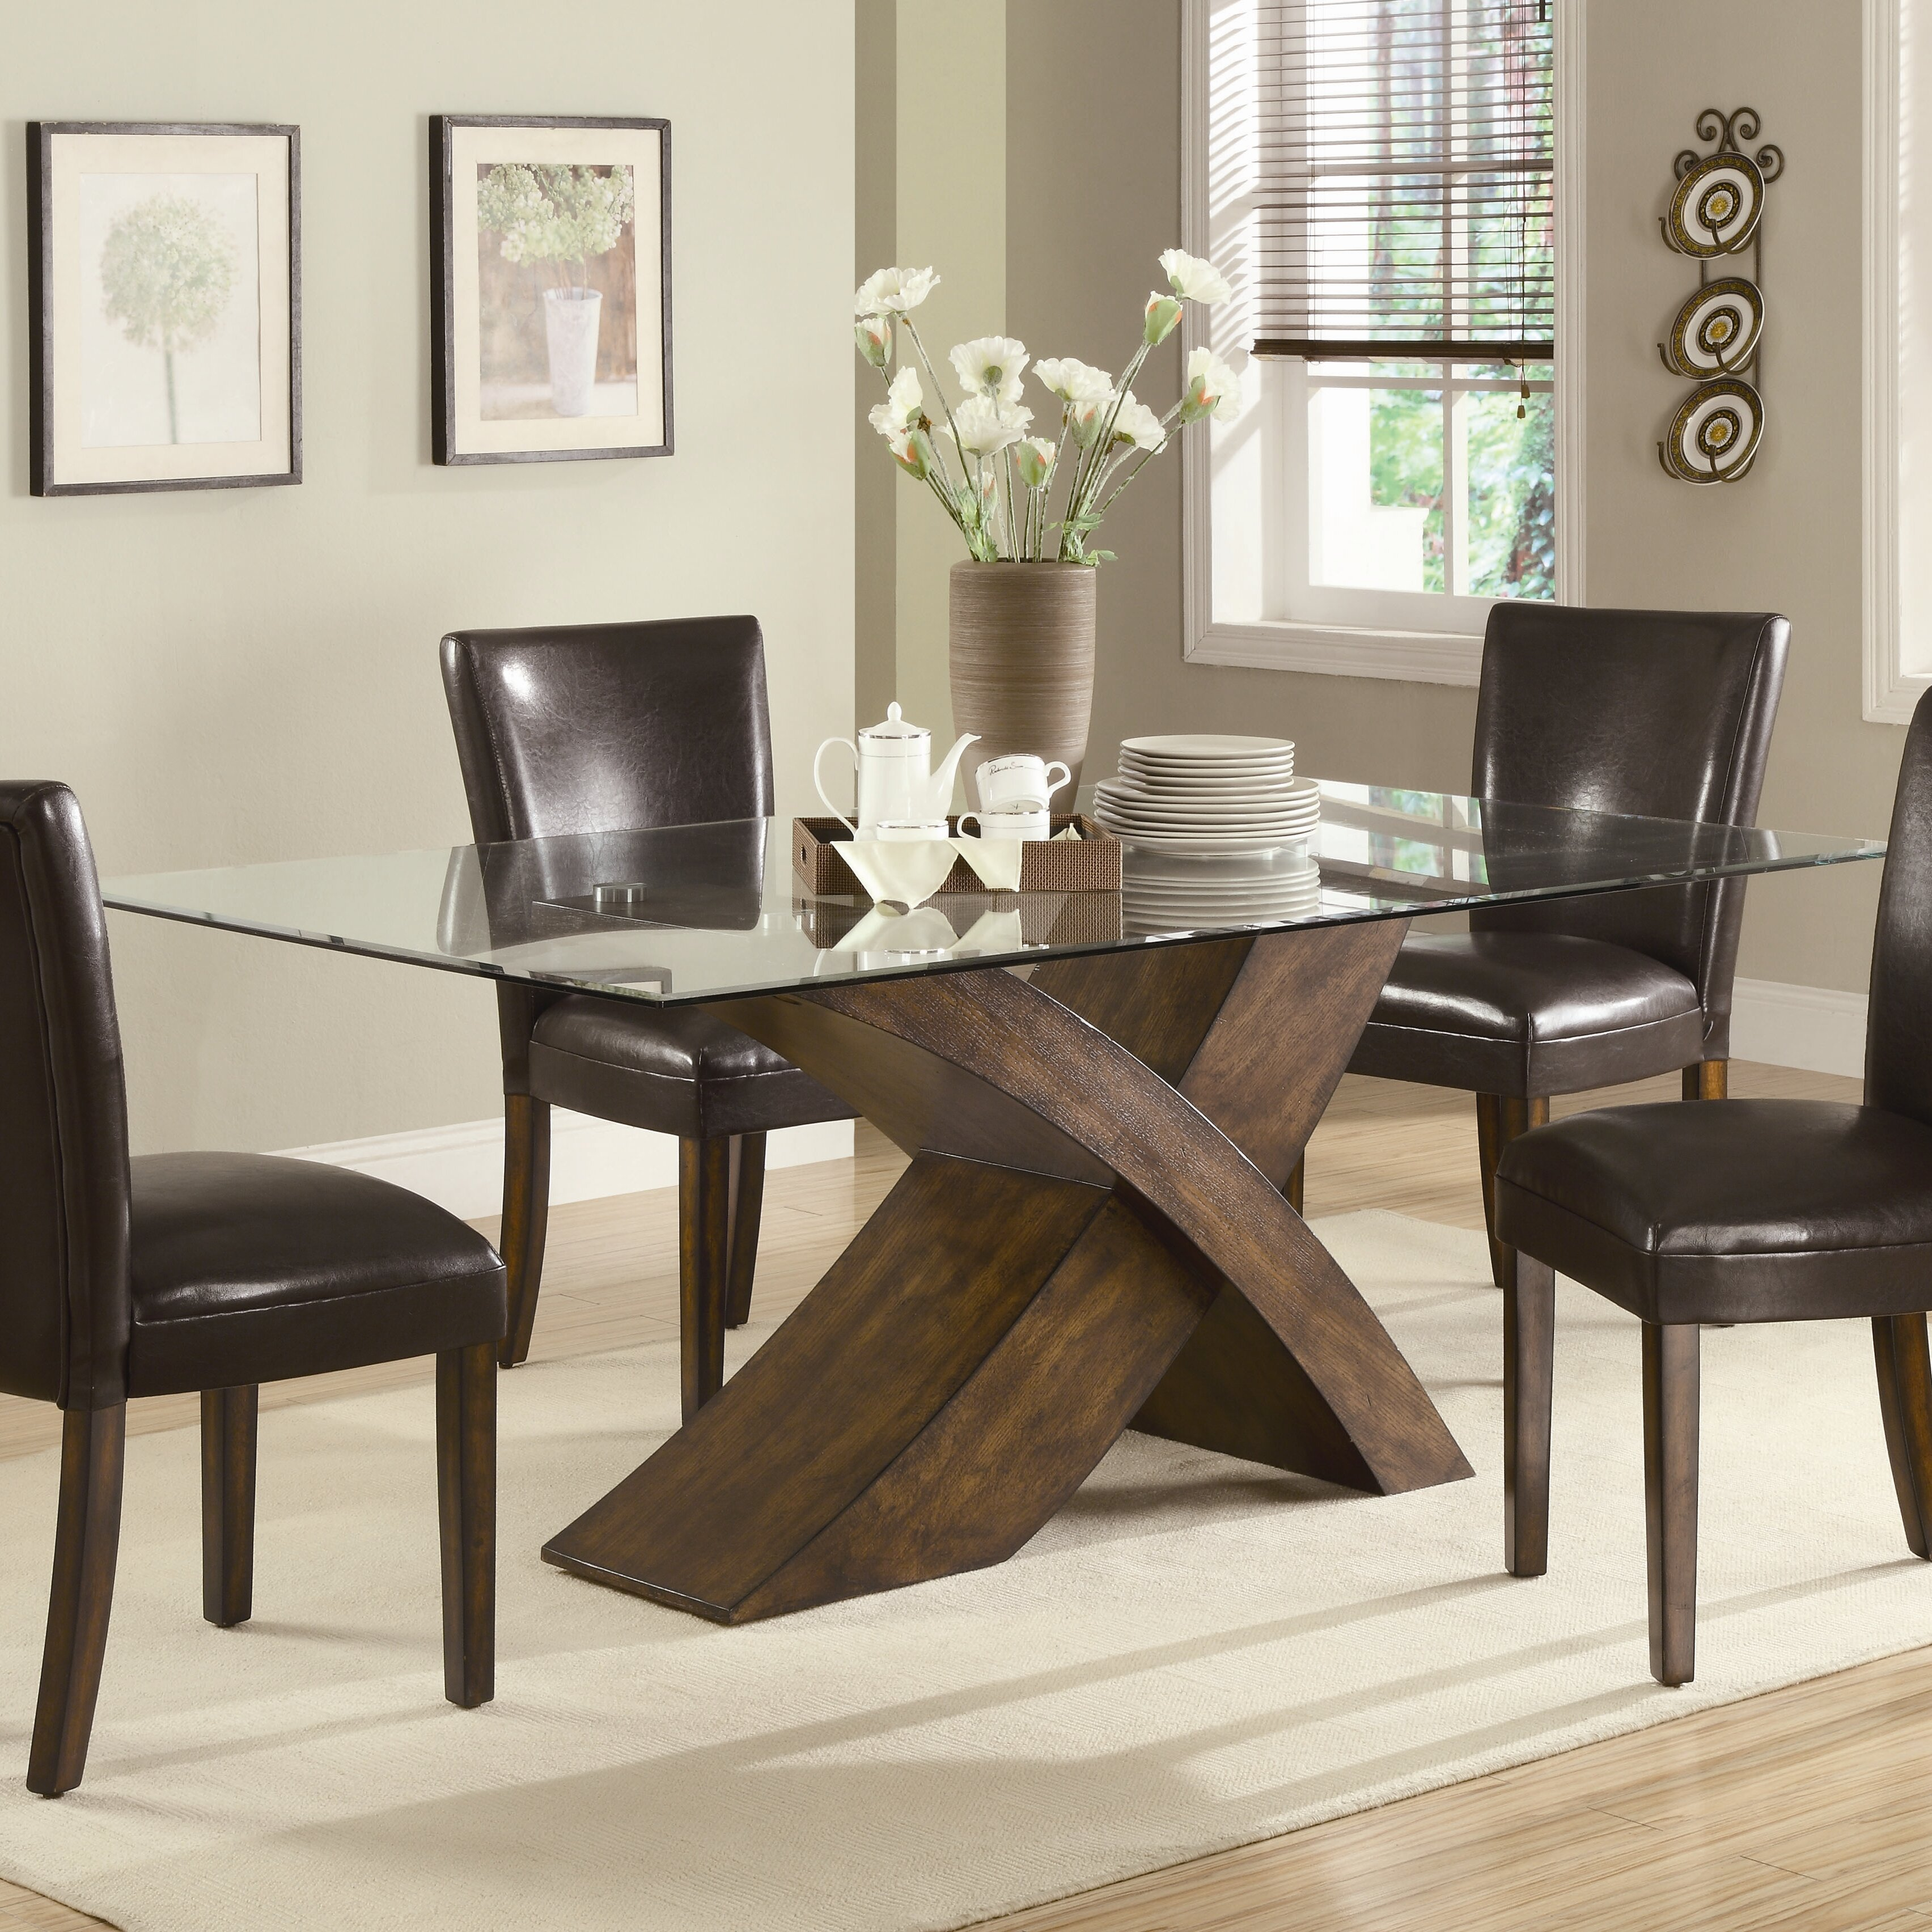 Chairs Z Gallerie Source Kijiji Montreal Dining Room Table Decor